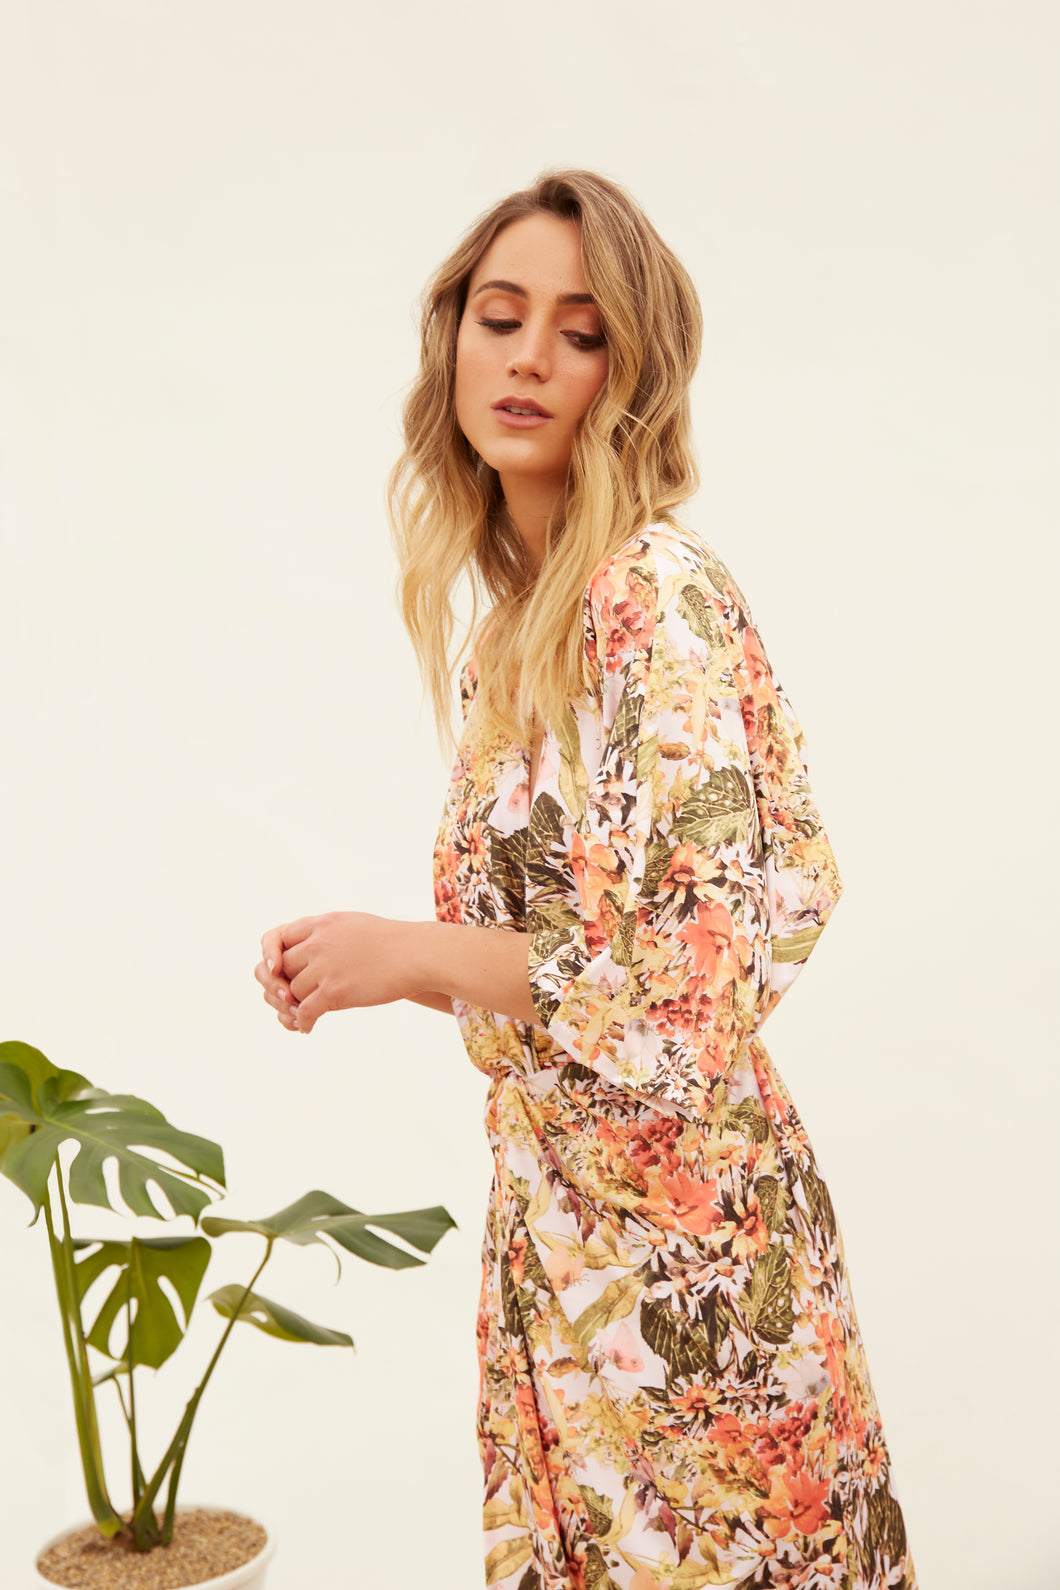 woman, dress, vestido,flowers, flores, new, terracotta, unique, beautiful, style, fashion, trendy, instagood, instadaily, shippinworldwide, onlineshopping, dayanamendozashop, shopdayanamendoza